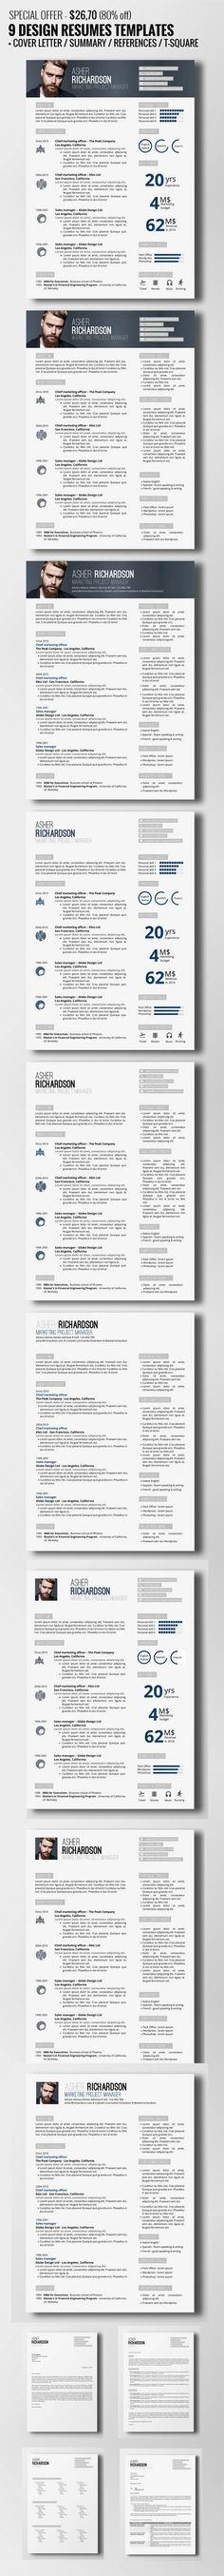 435 best Resume images on Pinterest Resume design, Design resume - resume paper